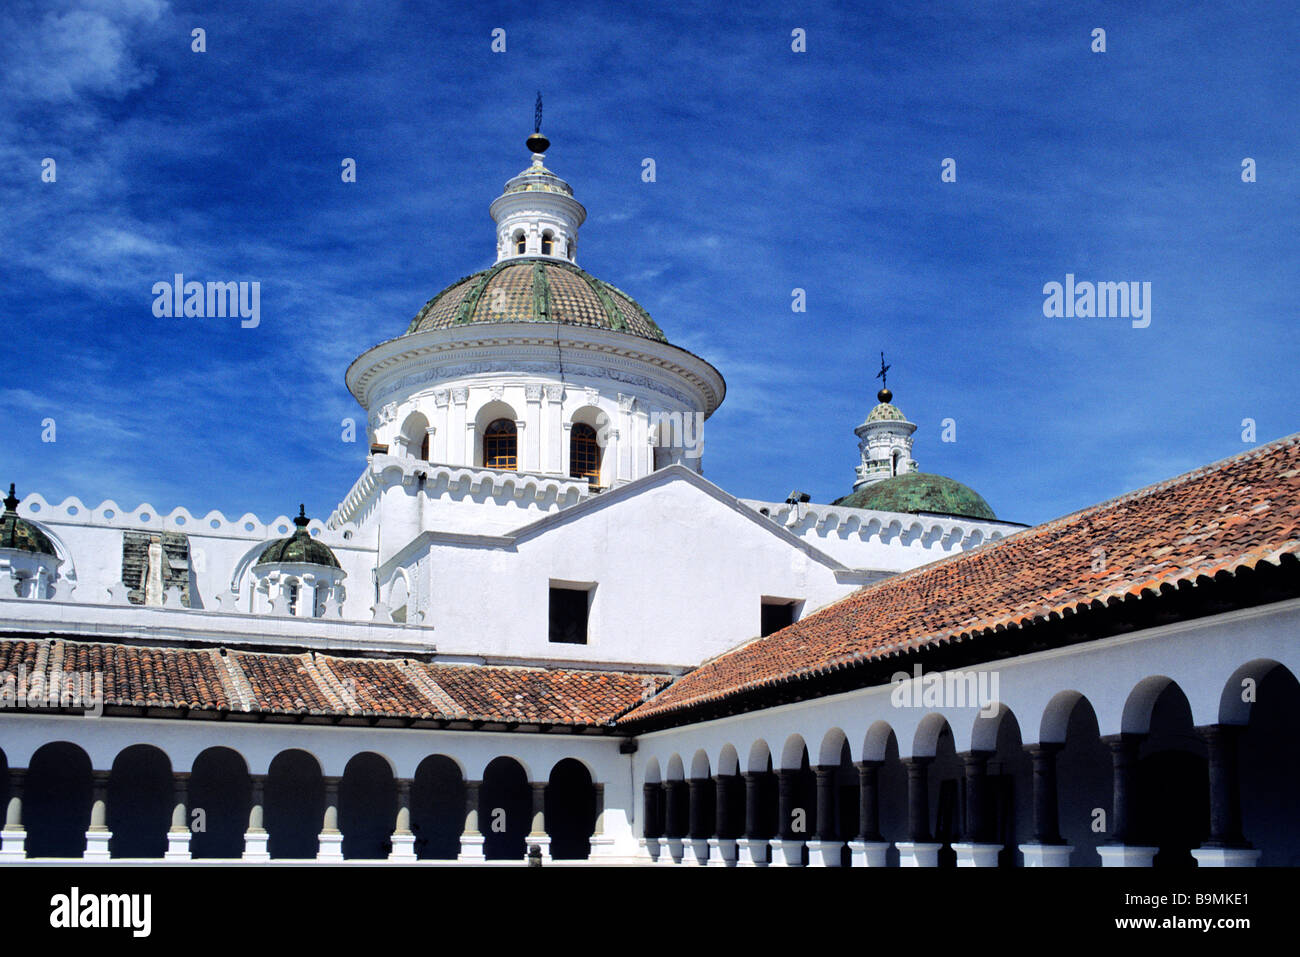 Ecuador, Pichincha province, Quito, the Merced Convent in the historical center classified as World Heritage by - Stock Image